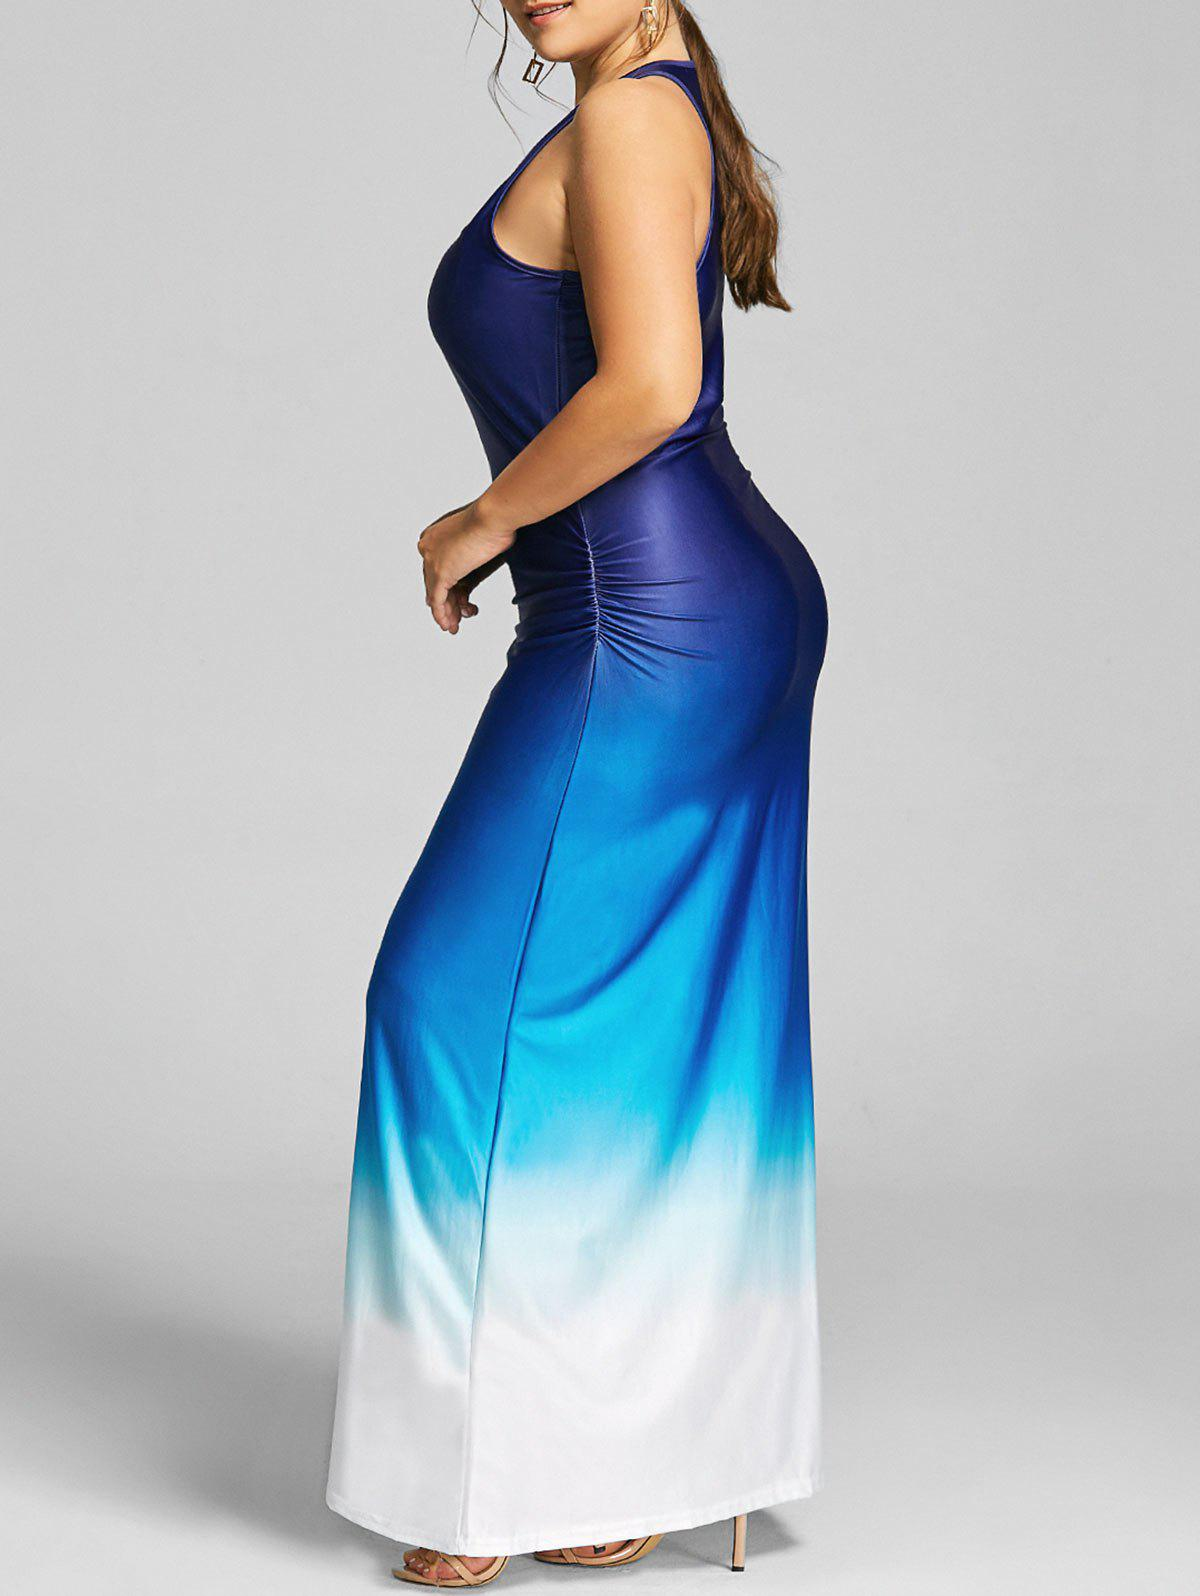 Plus Size Raceback Ombre Maxi DressWOMEN<br><br>Size: 5XL; Color: BLUE; Style: Casual; Material: Cotton,Polyester; Silhouette: Sheath; Dresses Length: Floor-Length; Neckline: U Neck; Sleeve Length: Sleeveless; Pattern Type: Ombre; With Belt: No; Season: Fall,Spring,Summer; Weight: 0.3450kg; Package Contents: 1 x Dress;